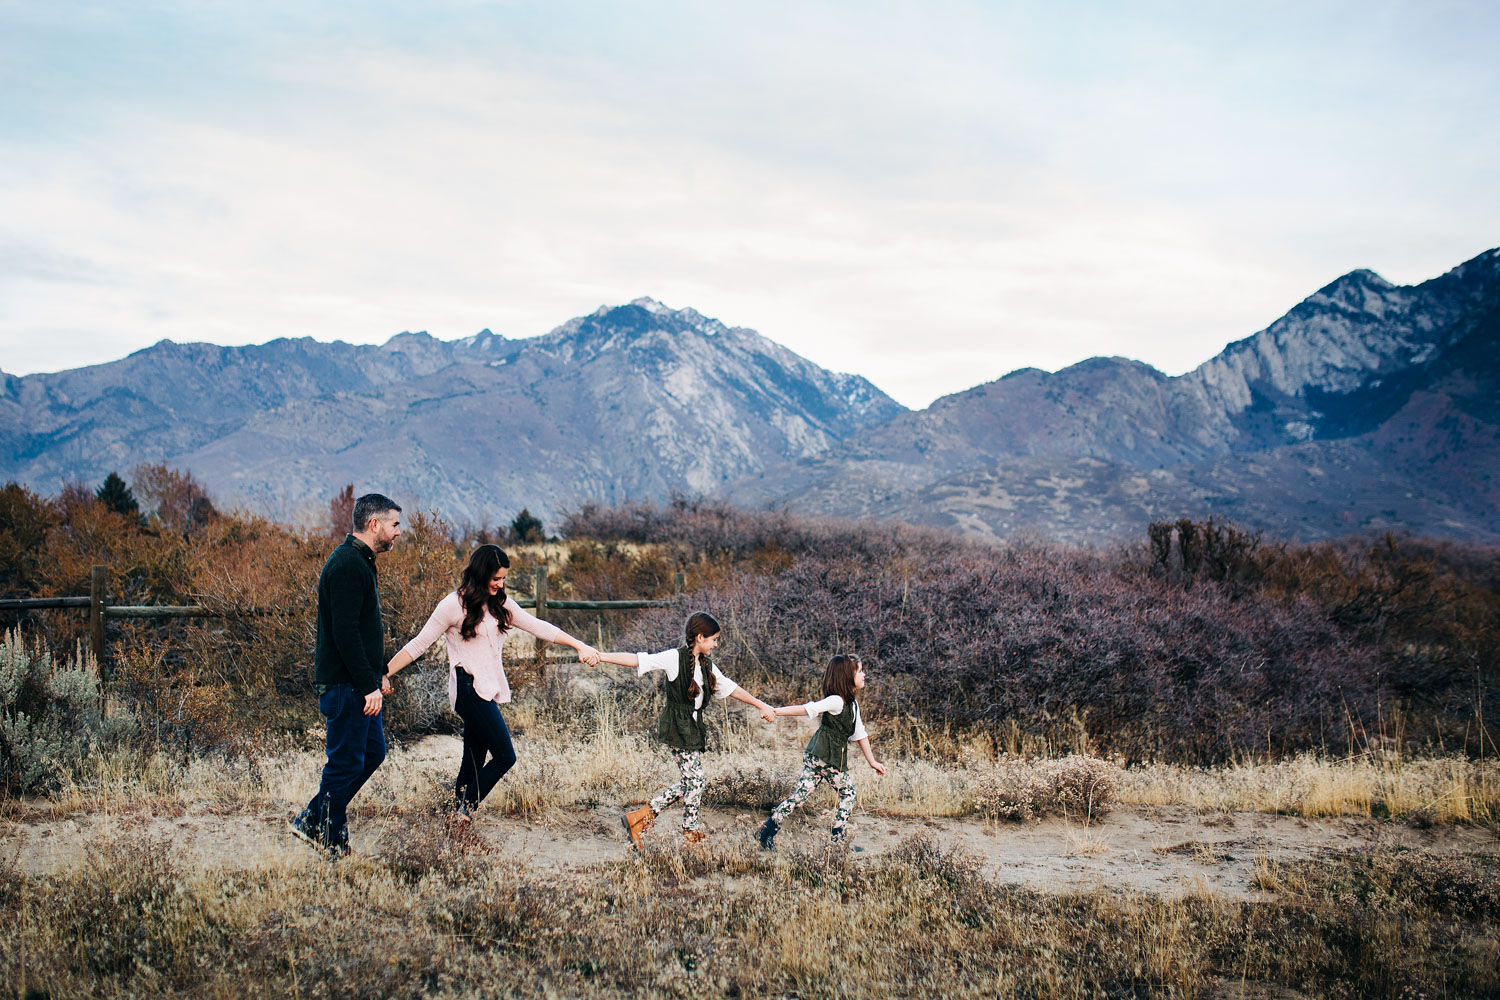 A family of four is walking together and holding hands during a photo session with Amy Wright, who is a photographer based out of Sacramento, California.